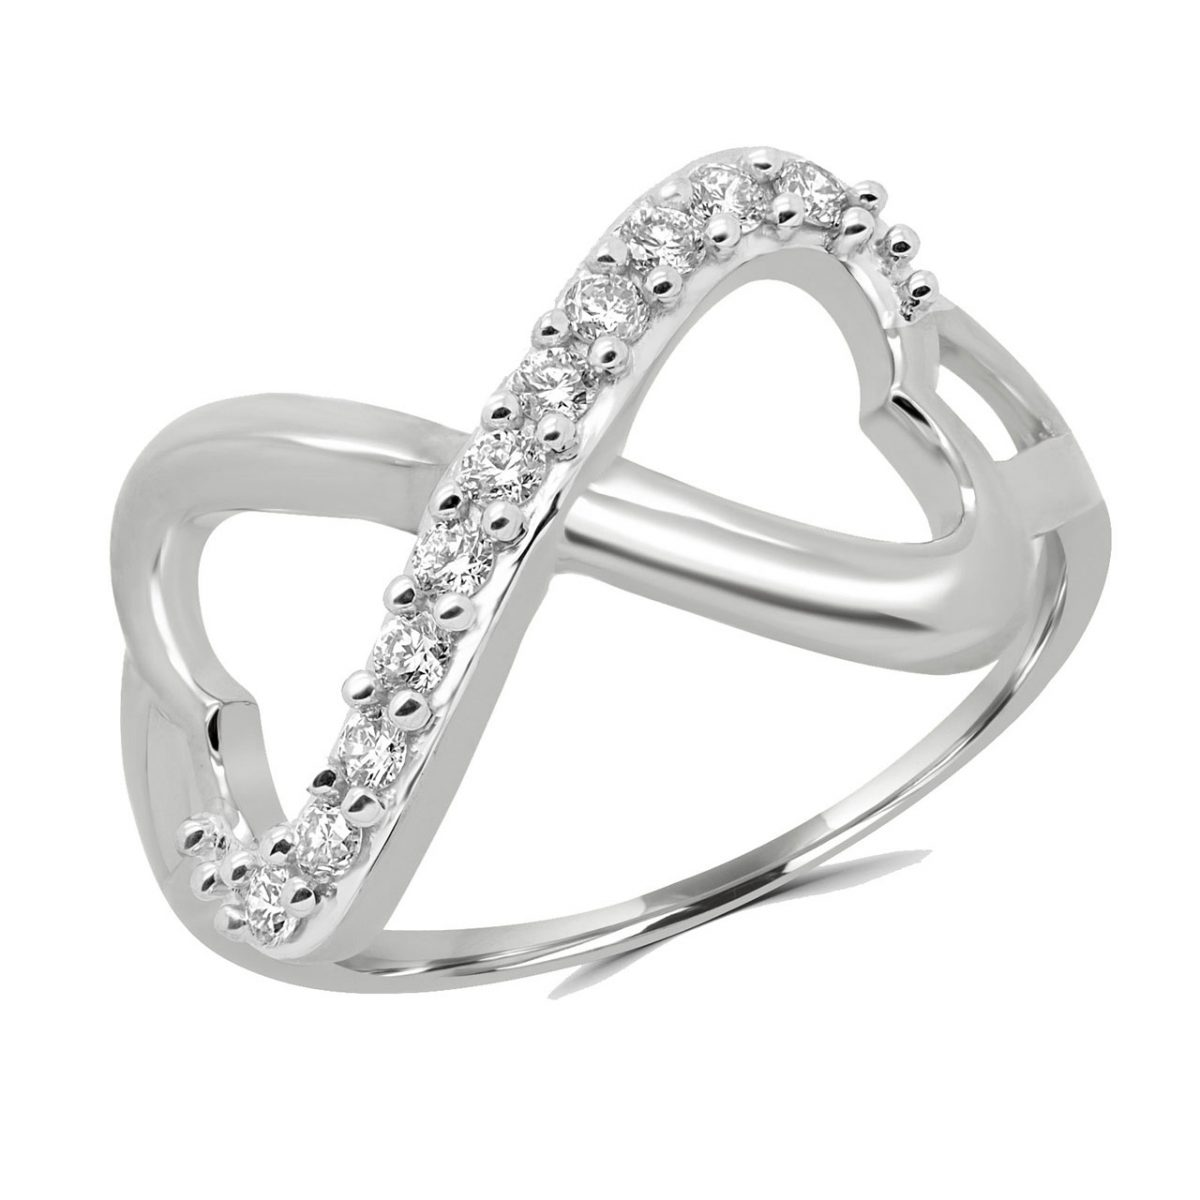 Infinity double heart ring 0.20 (ctw) in 10k white gold